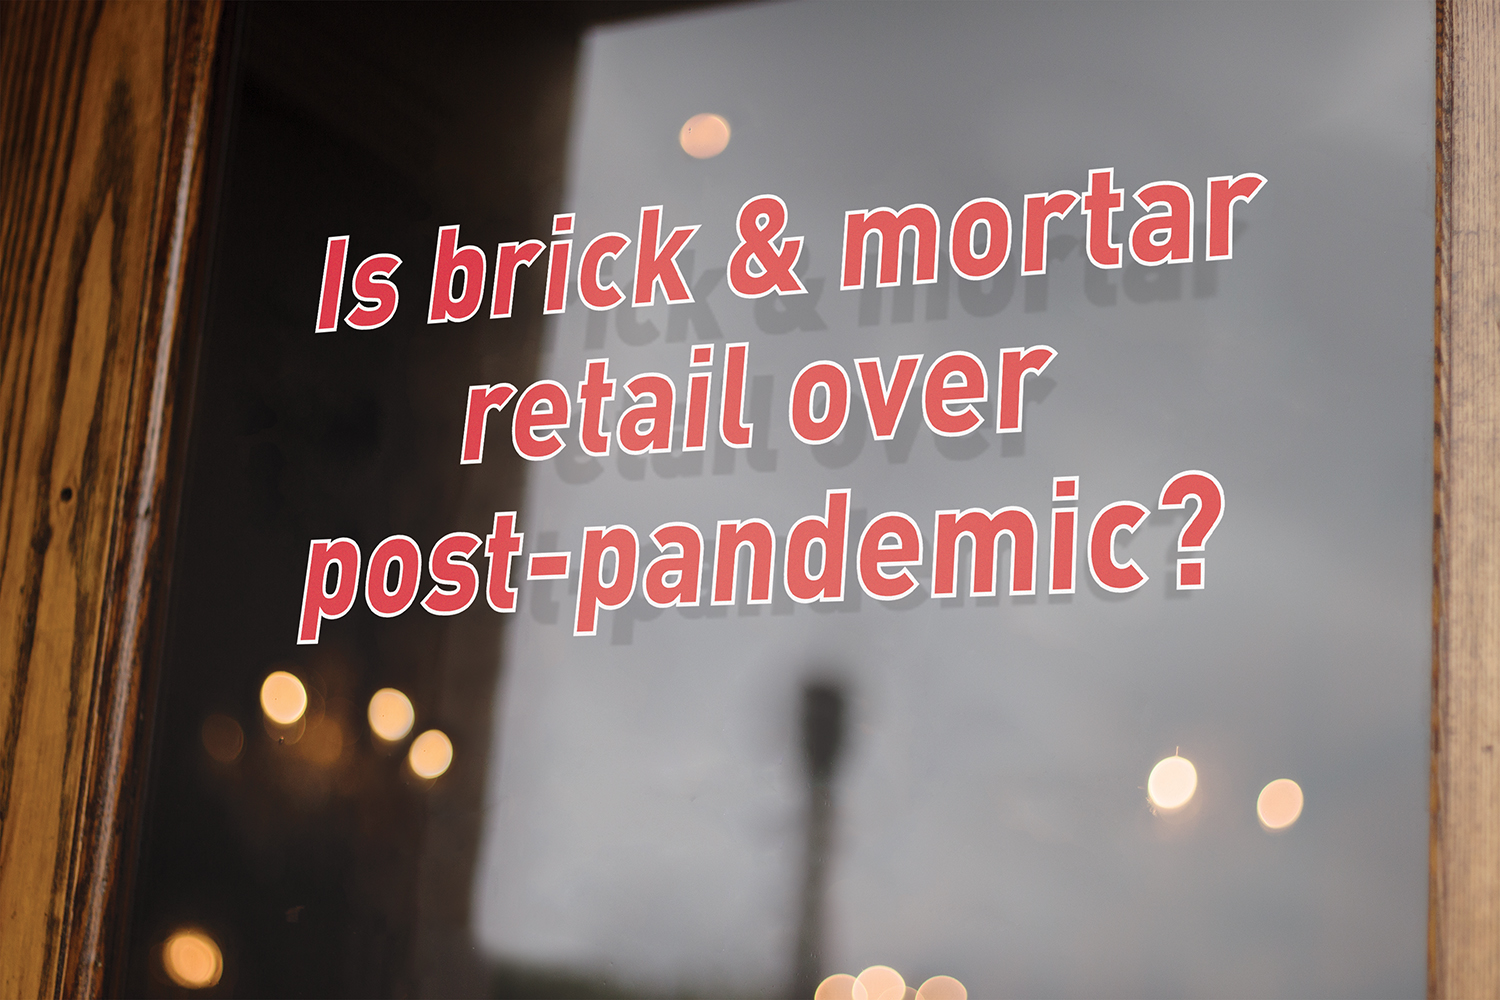 Is brick and mortar retail over post-pandemic?